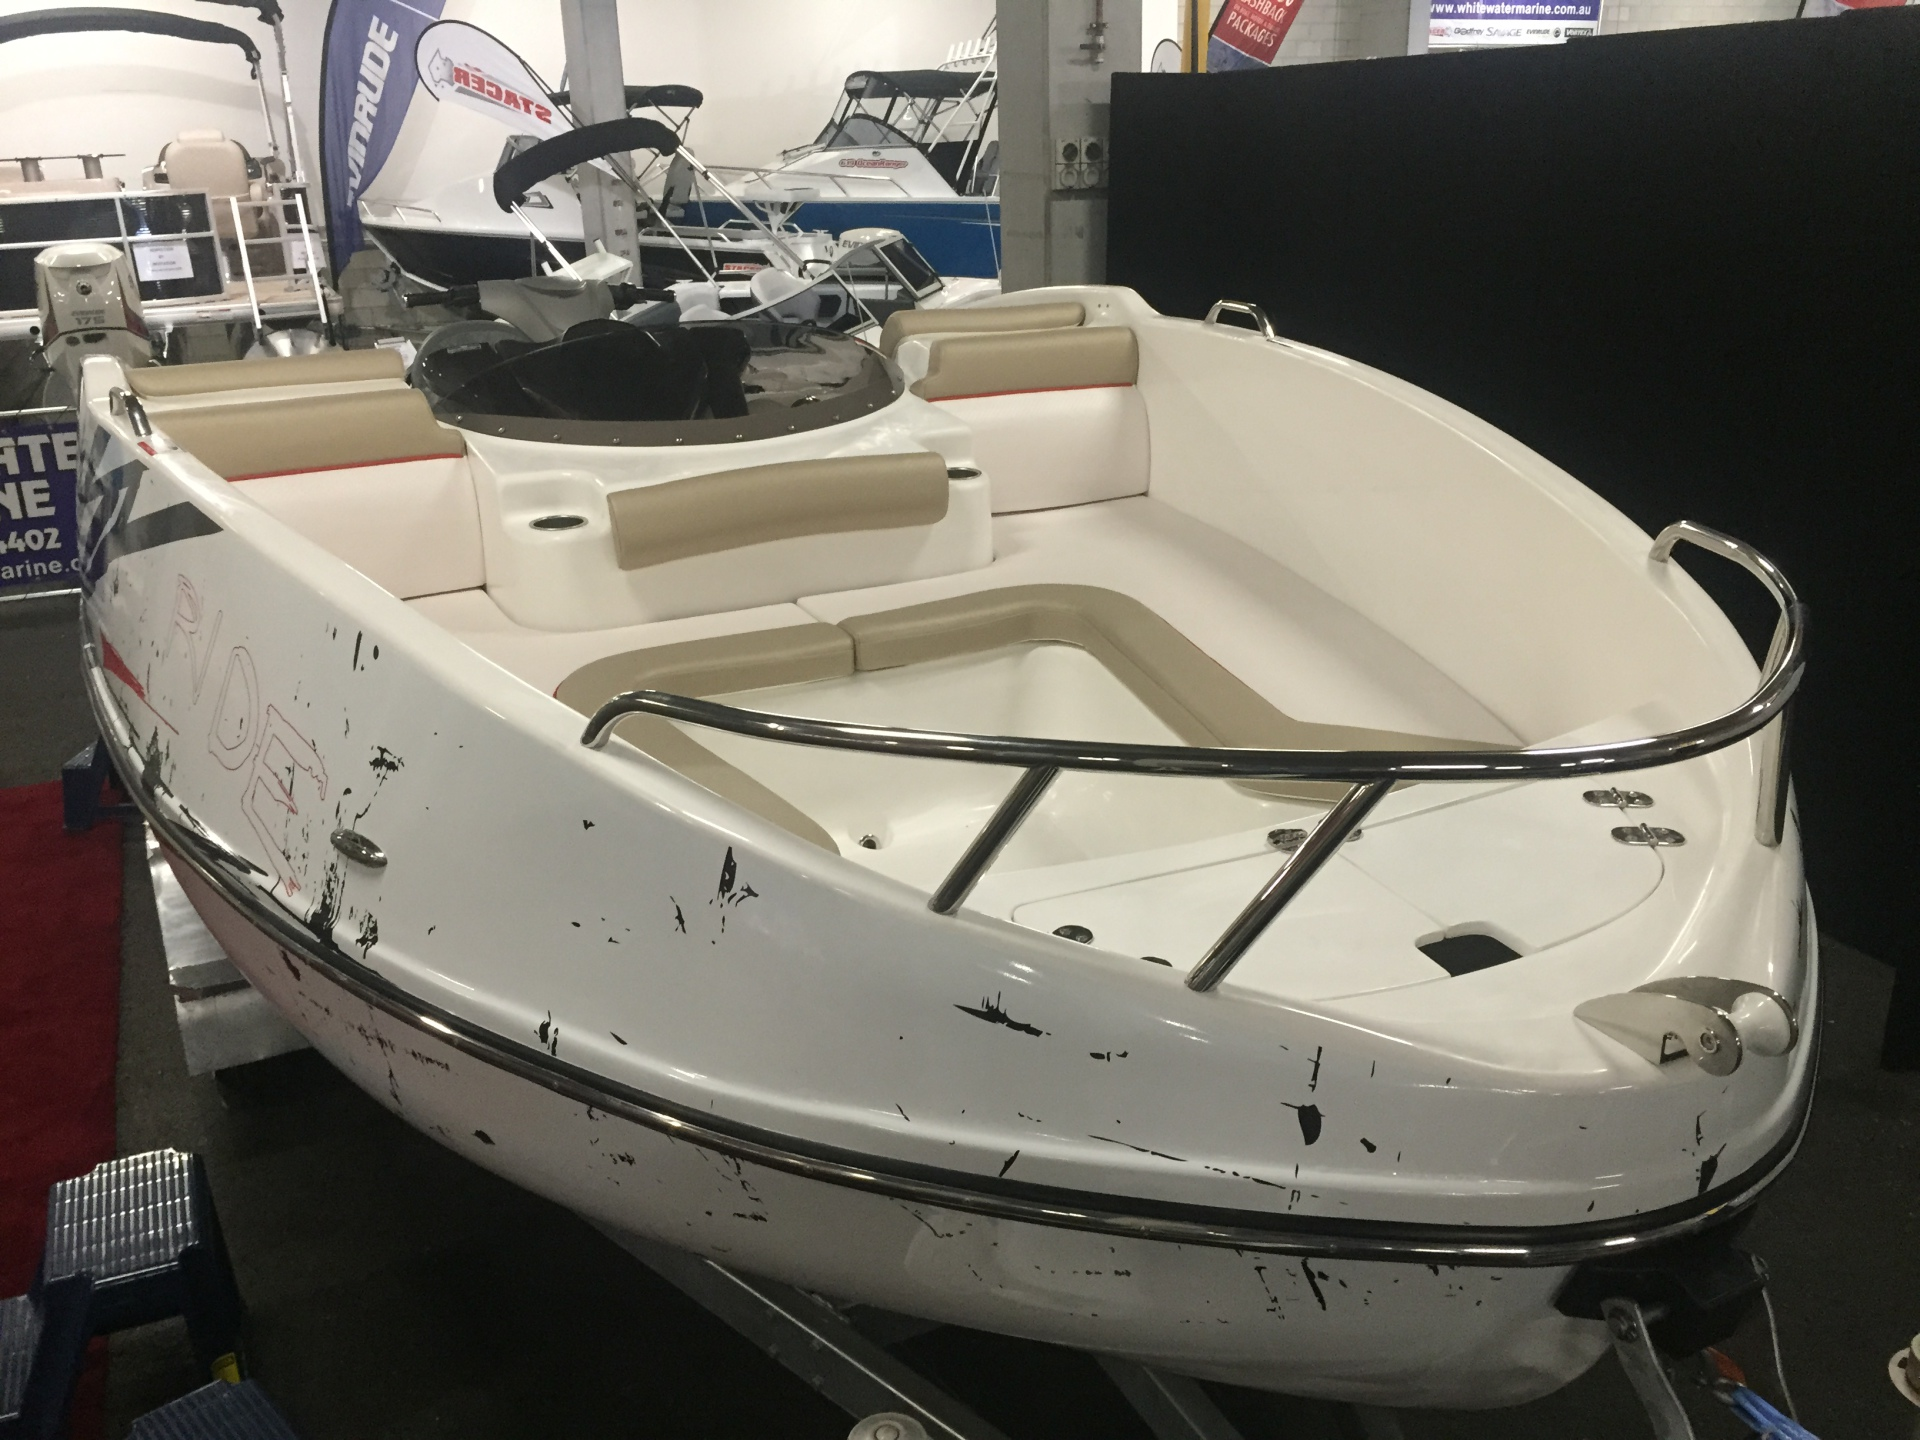 Jet Si Boat Marine upholstery